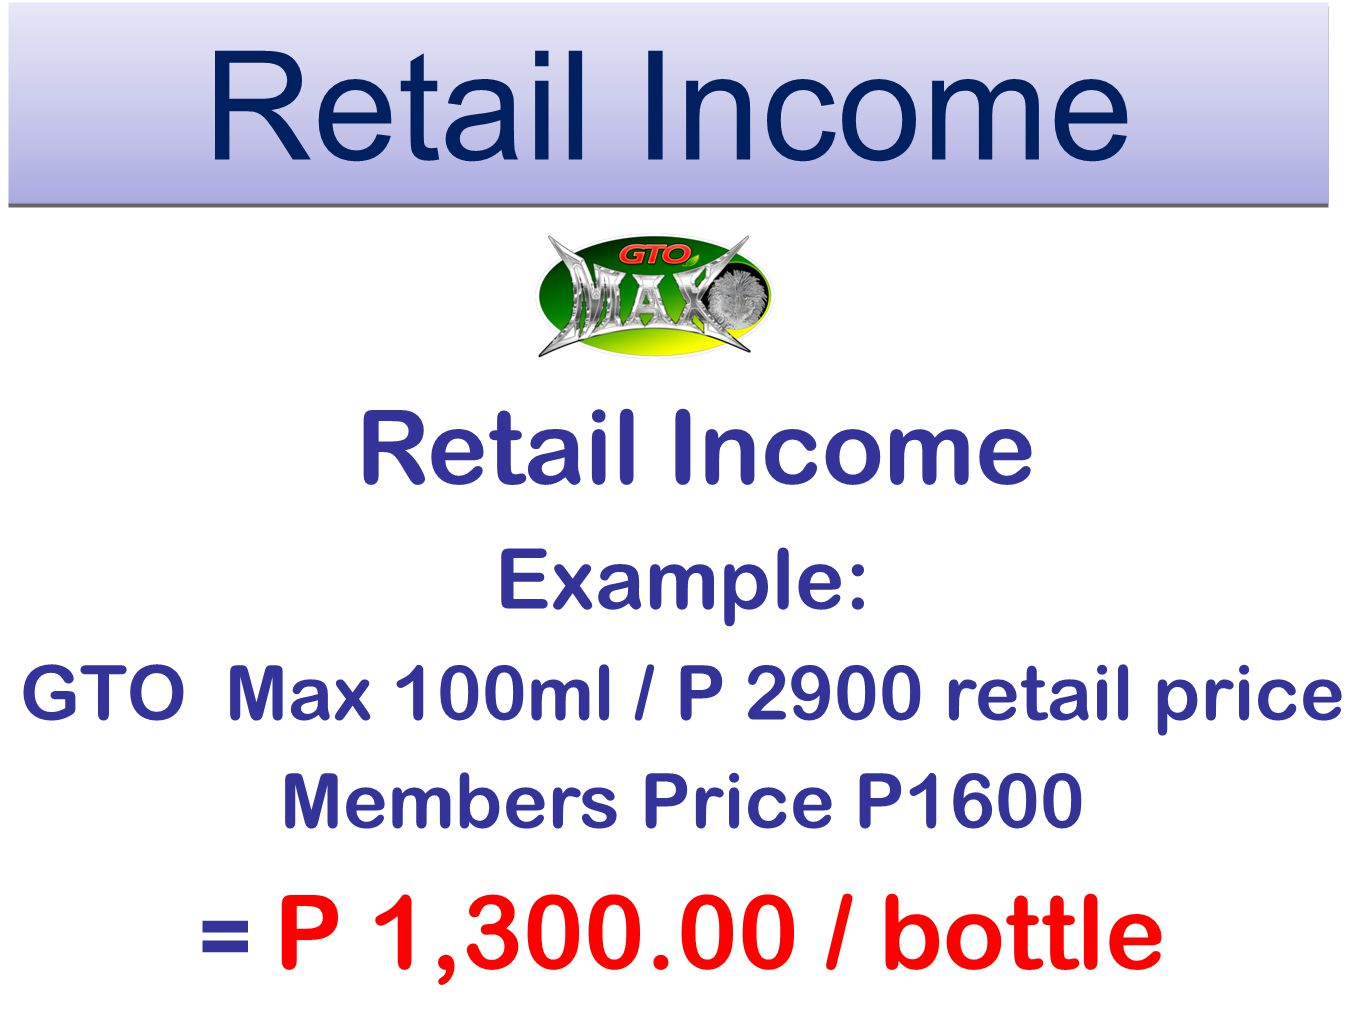 GTO Max 100ml / P 2900 retail price